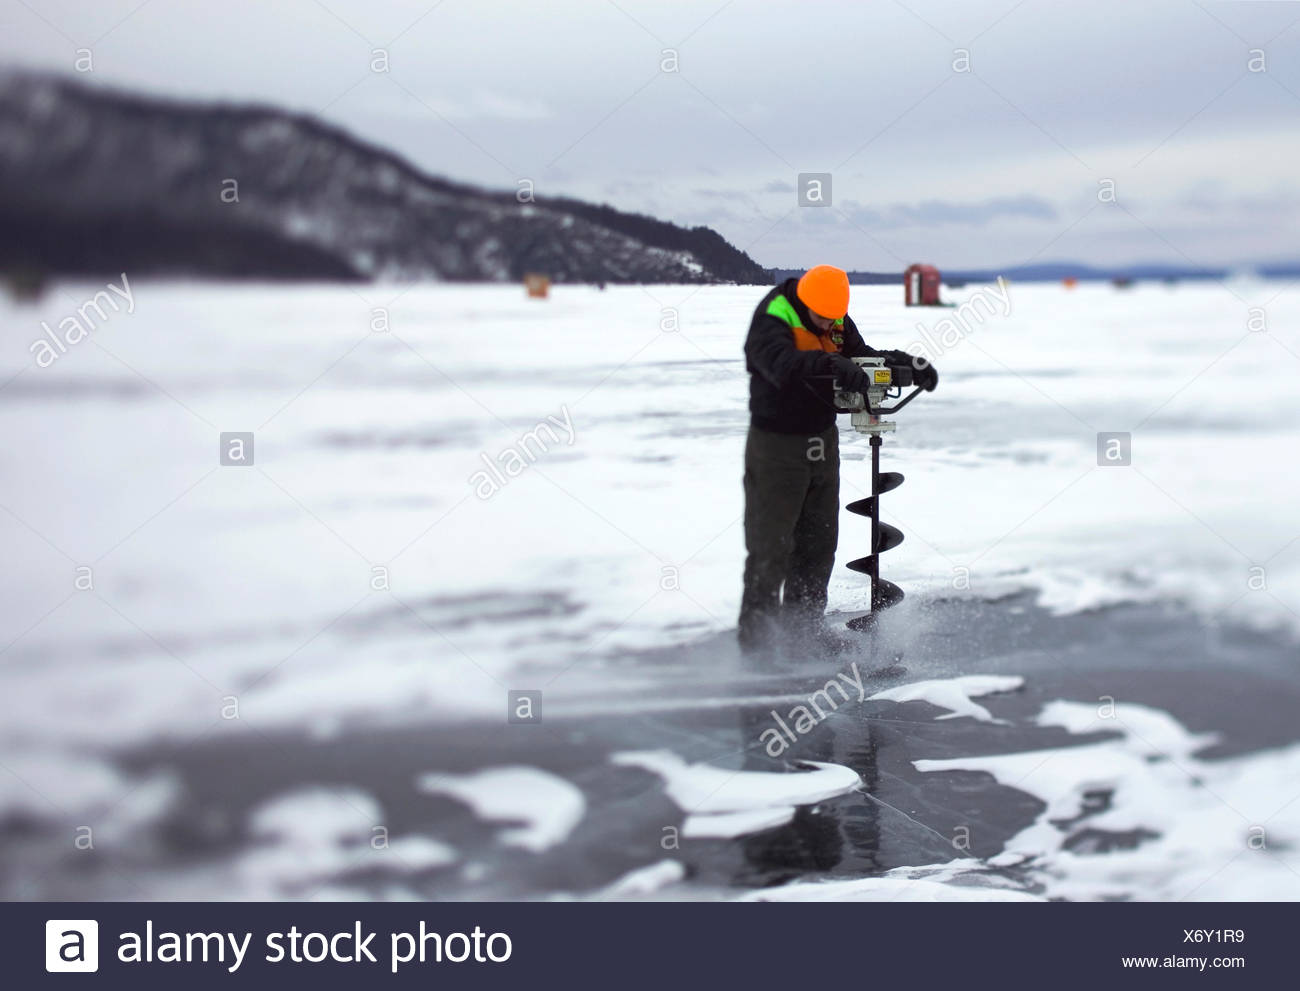 Ice Auger In Ice Stock Photos & Ice Auger In Ice Stock